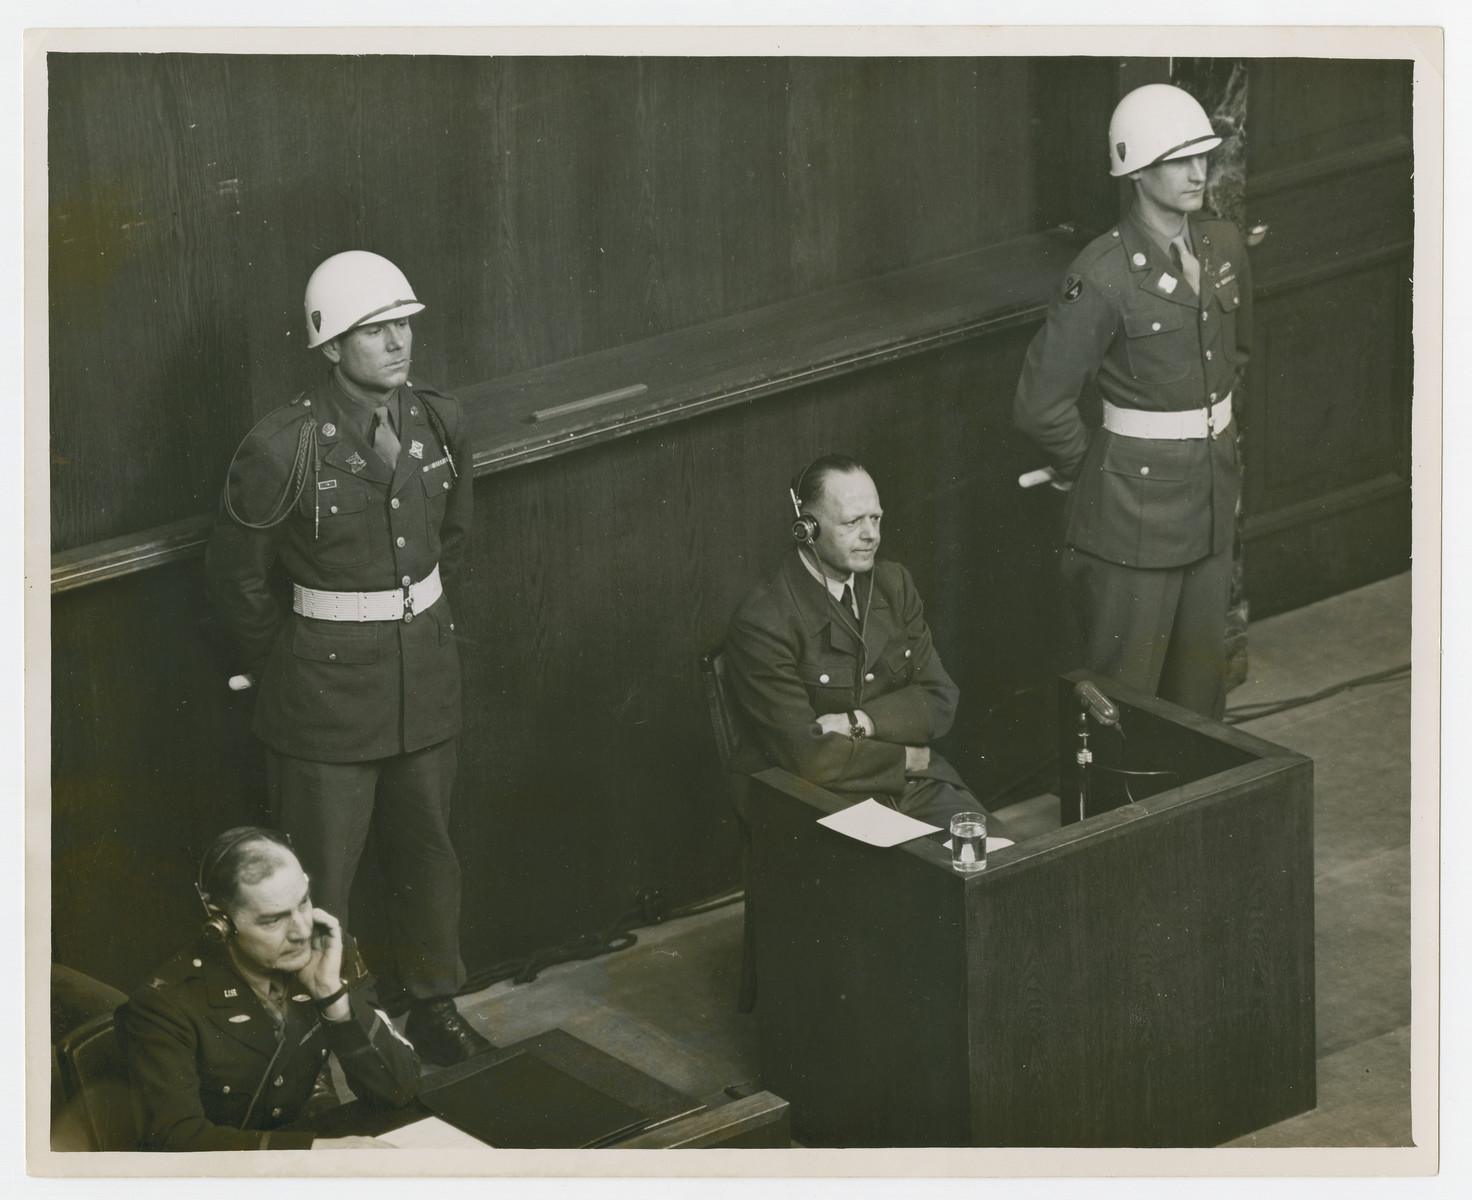 Erhard Milch sits at the defendants block flanked by American military police during his trial in Nuremberg.